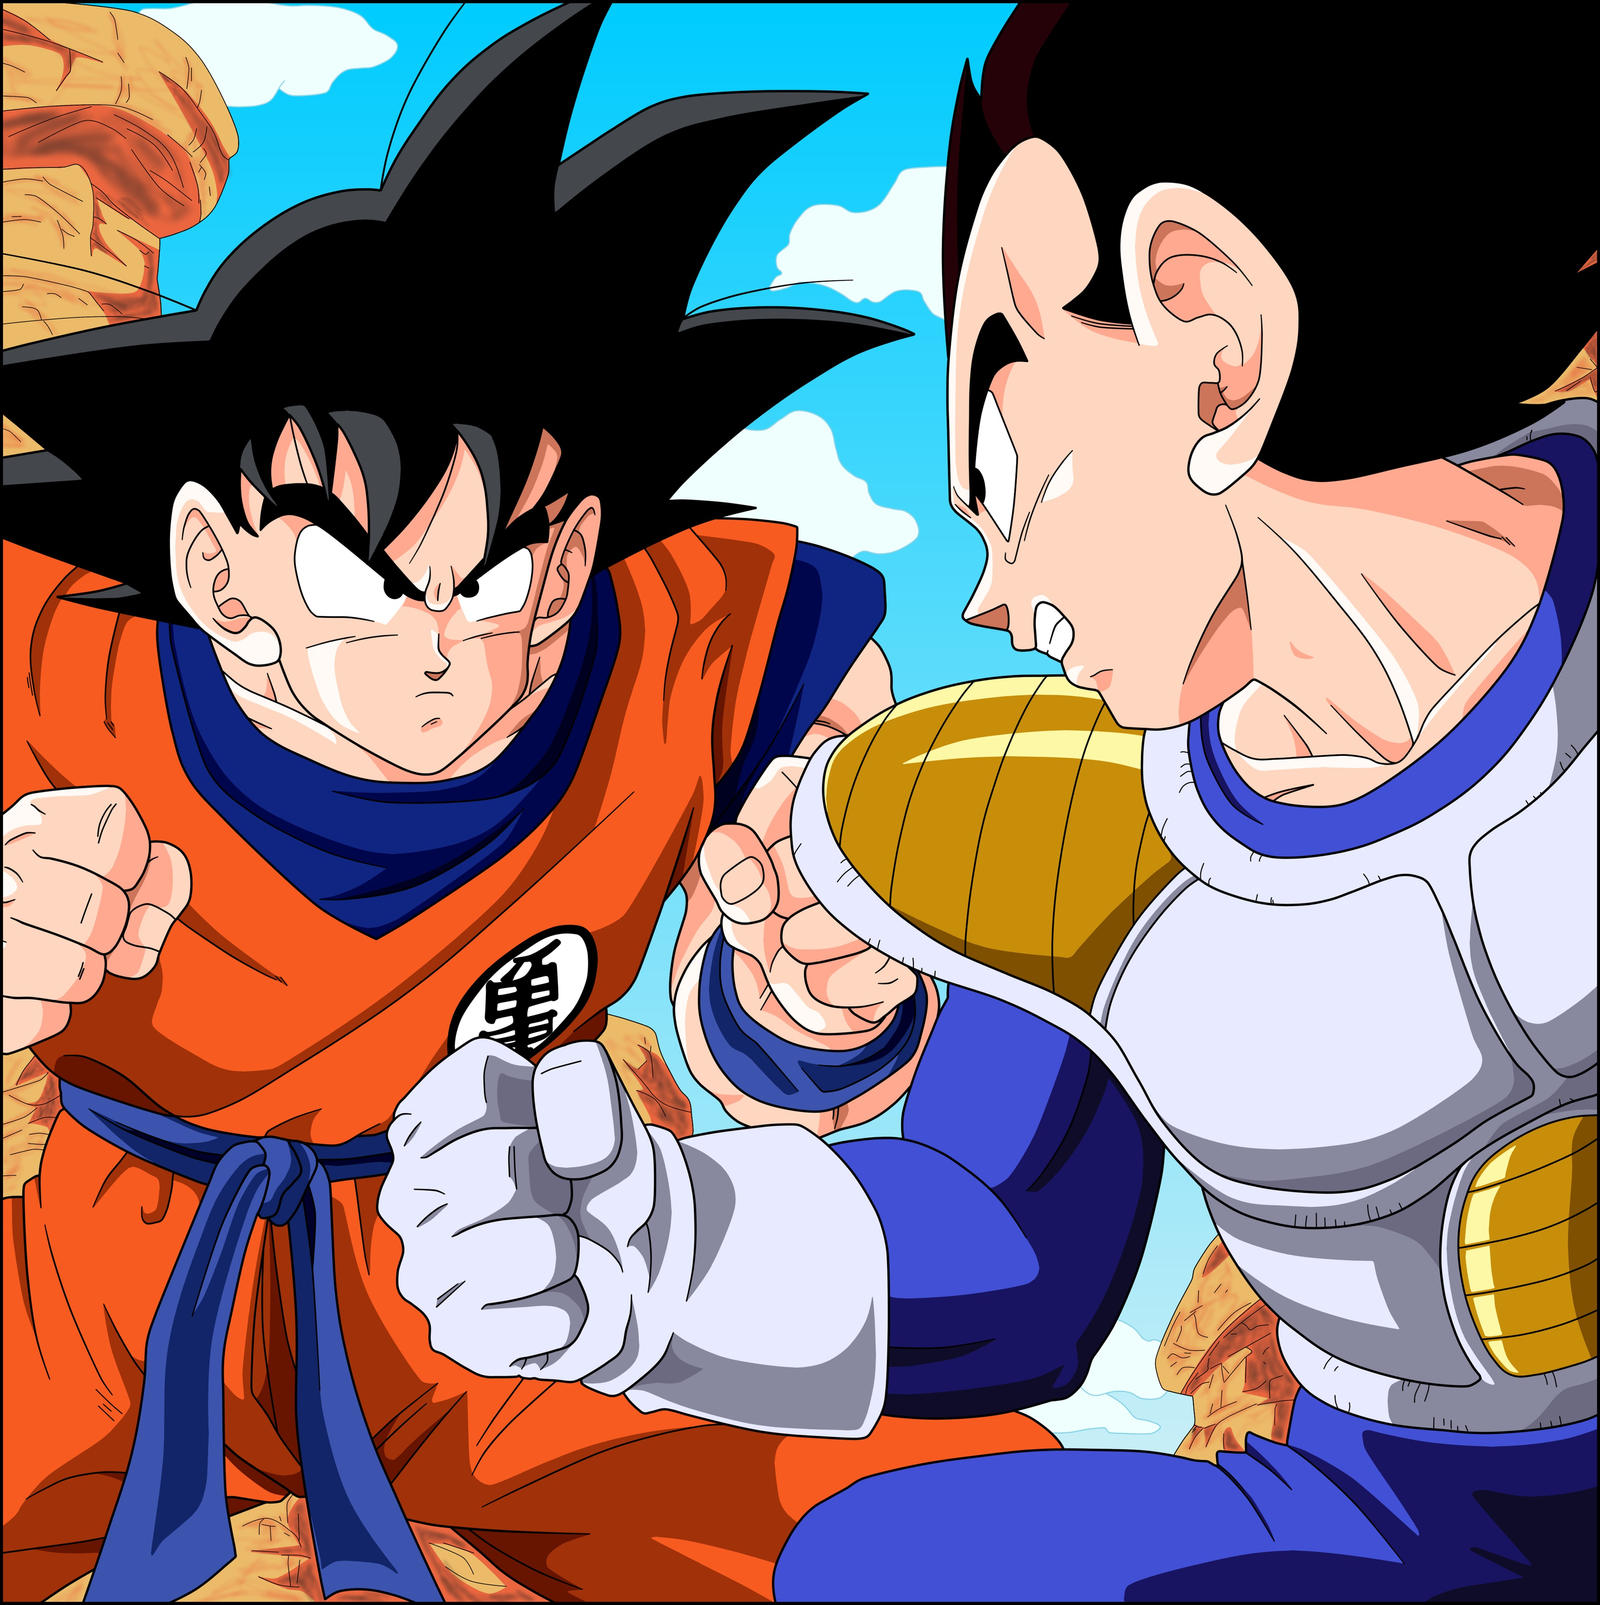 Goku vs vegeta saiyan saga by el maky z on deviantart - Goku vs vegeta super saiyan 5 ...